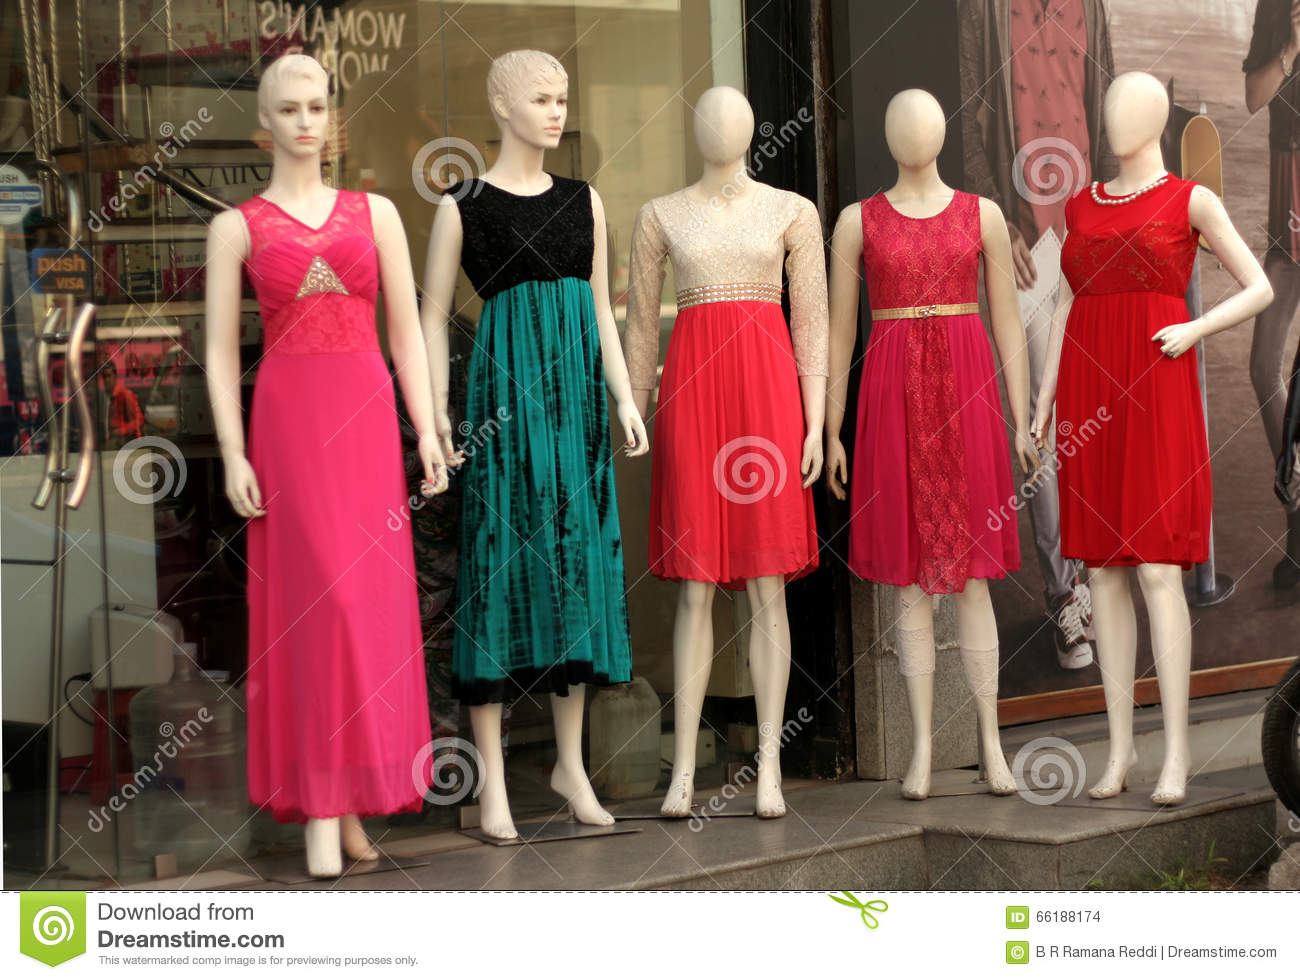 Max clothing store in hyderabad